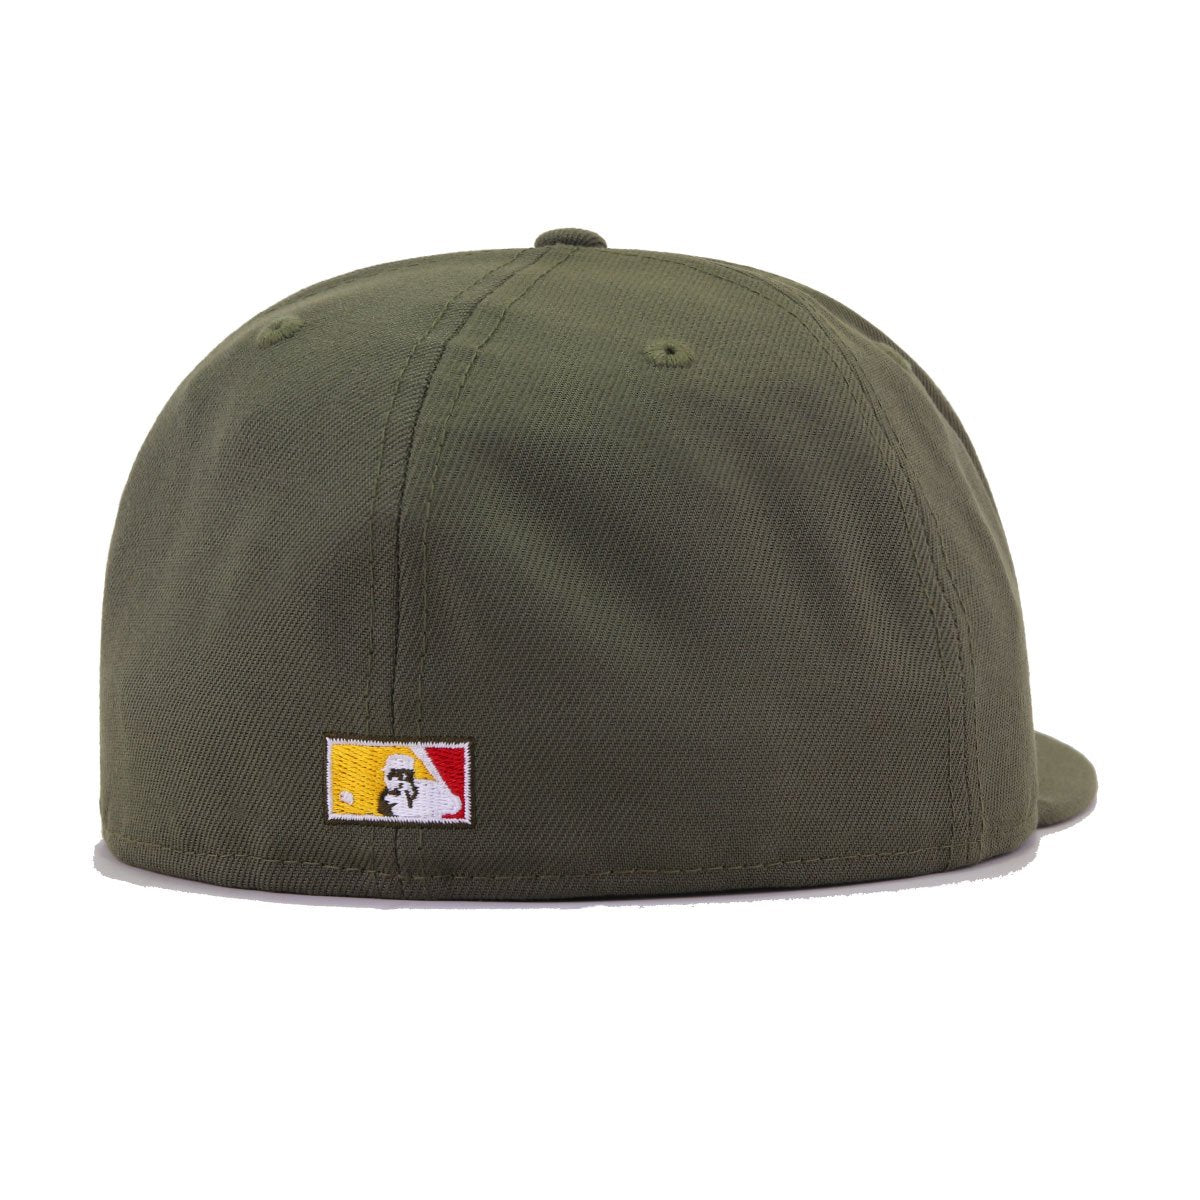 California Angels New Olive Cooperstown New Era 59Fifty Fitted